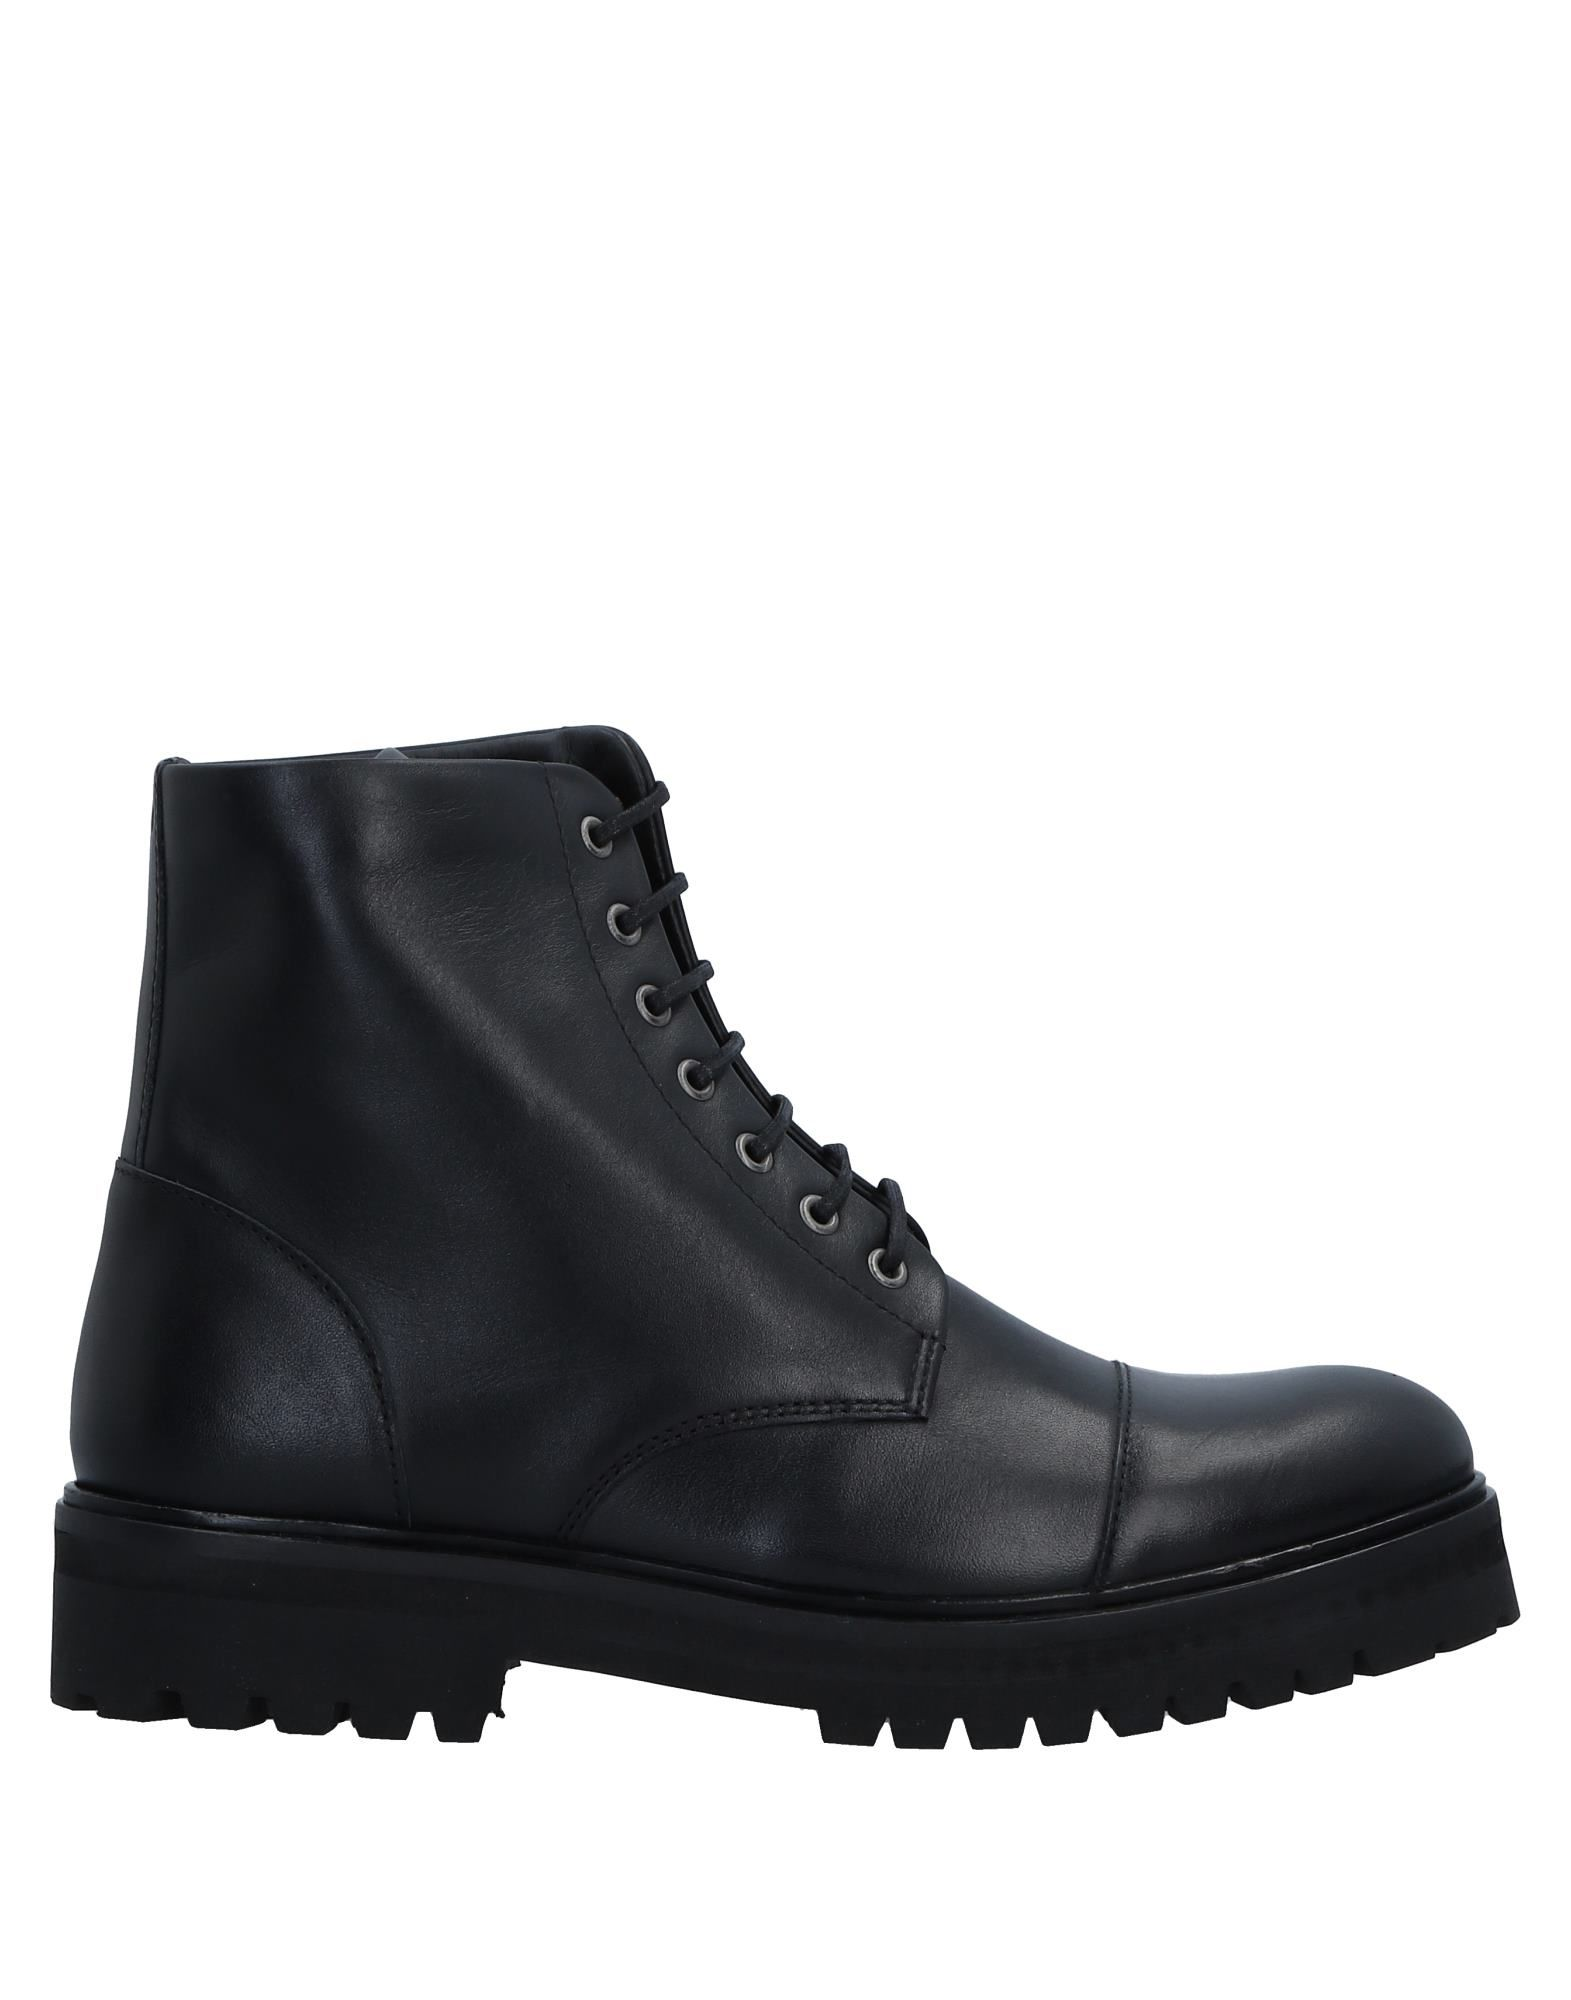 ROYAL REPUBLIQ Ankle Boot in Black